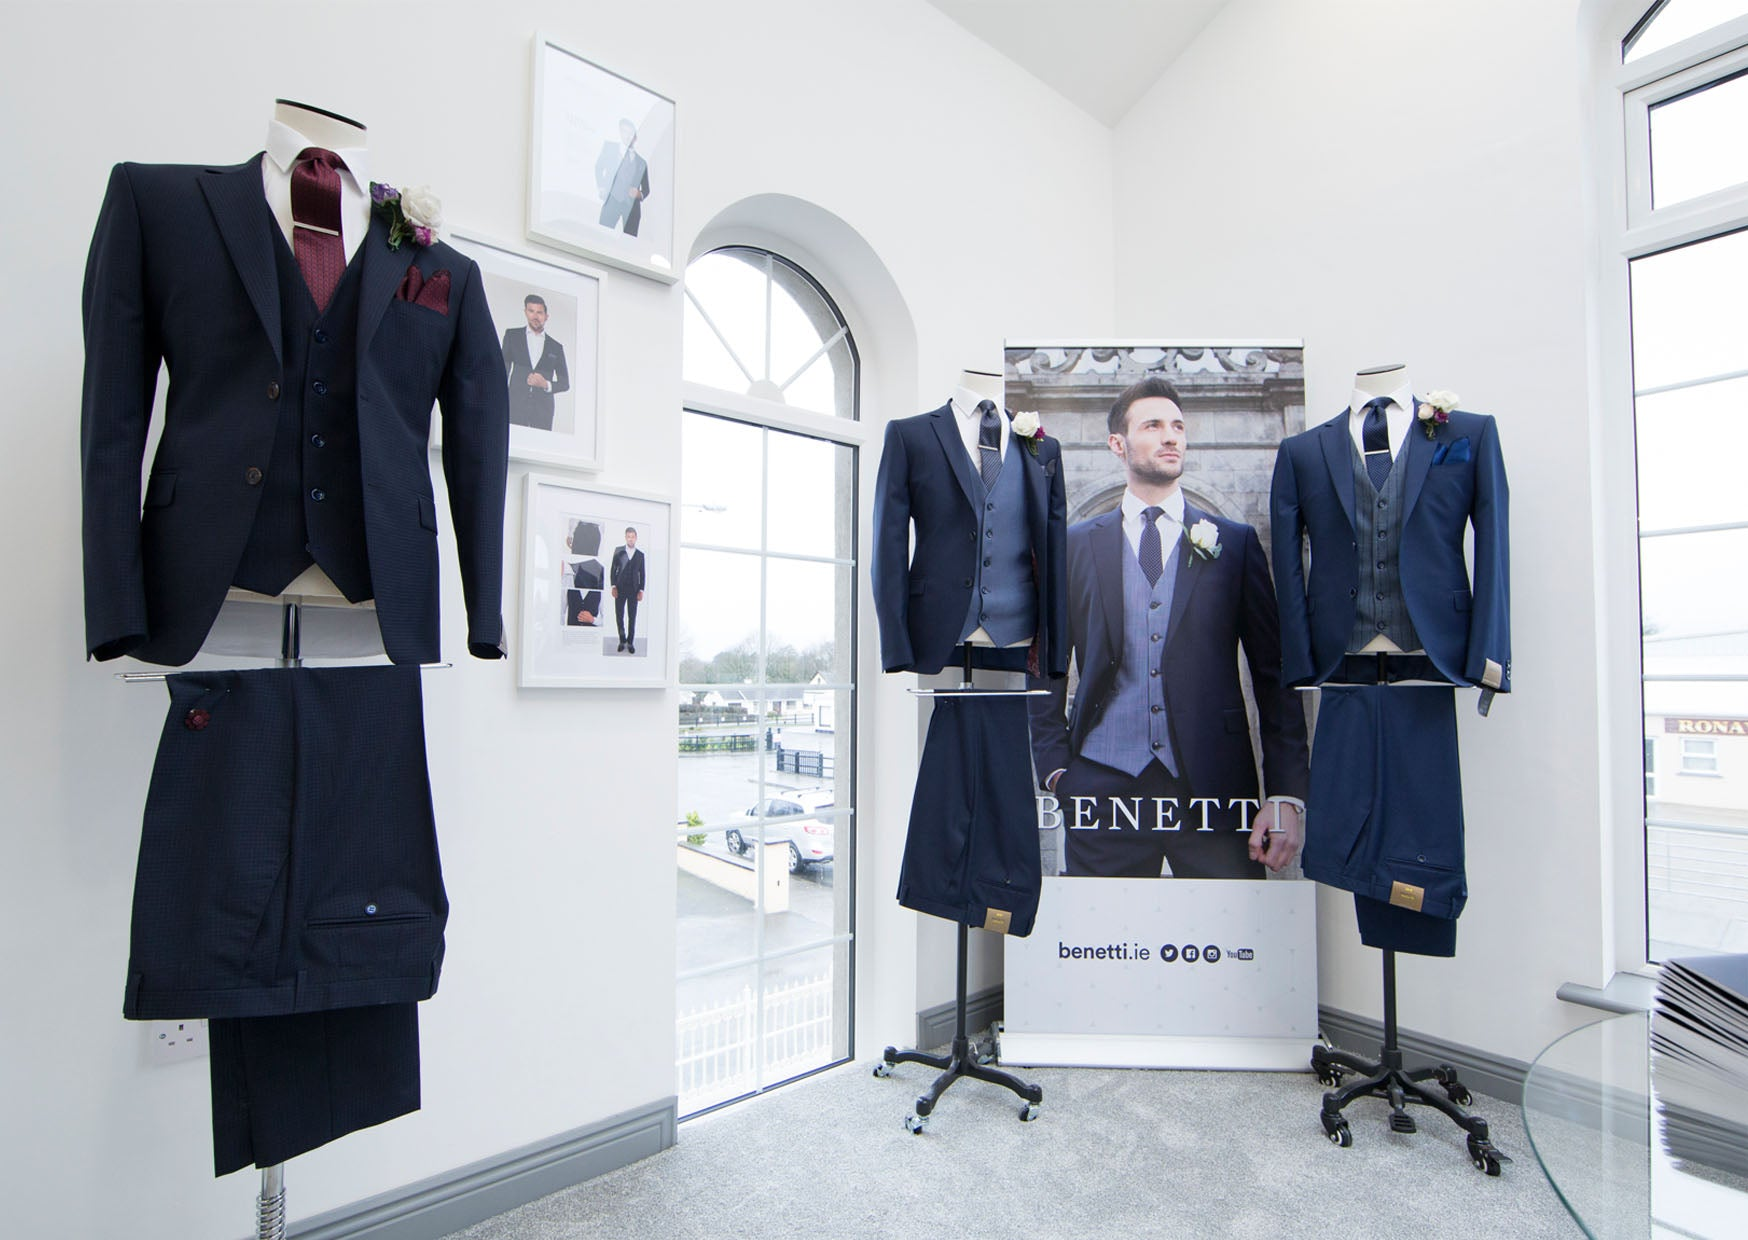 Benetti Menswear, Menswear Ireland, Benetti showroom, Official Launch, Ballymahon, Model, suits, shirt, ties, Benetti, Mix and Match Suits